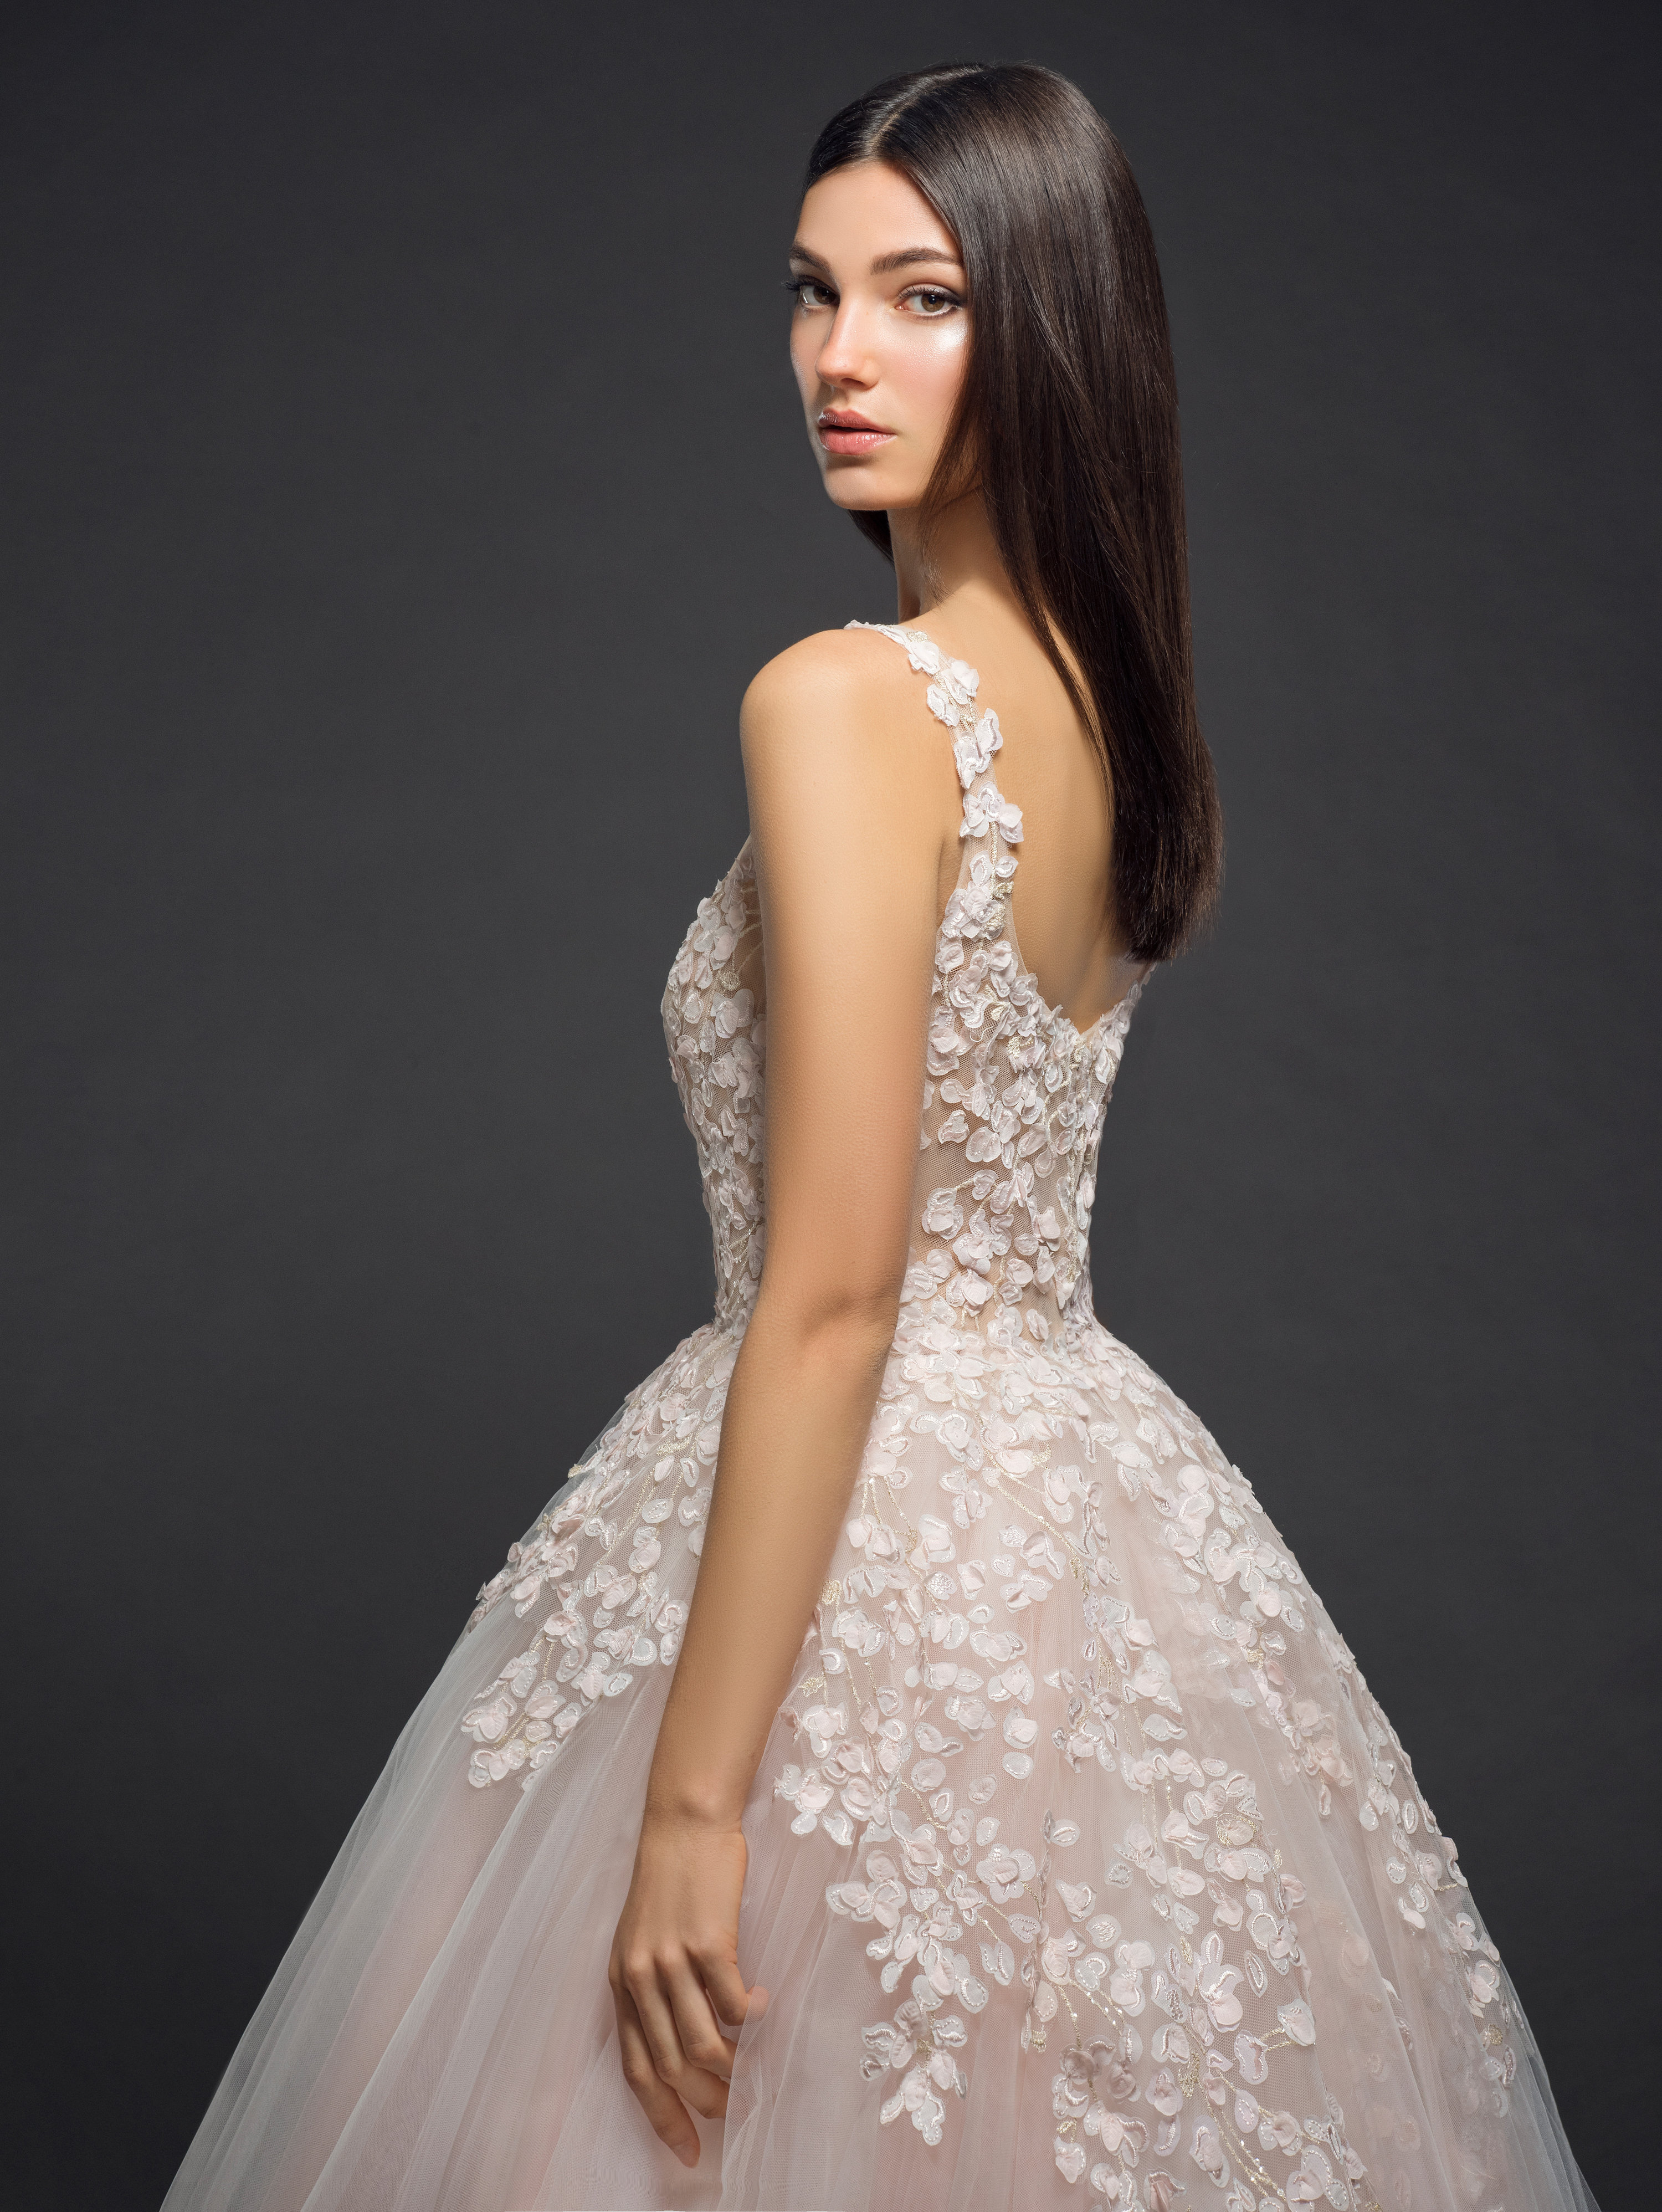 Floral Embroidery With An Illusion Neck And Tulle Skirt